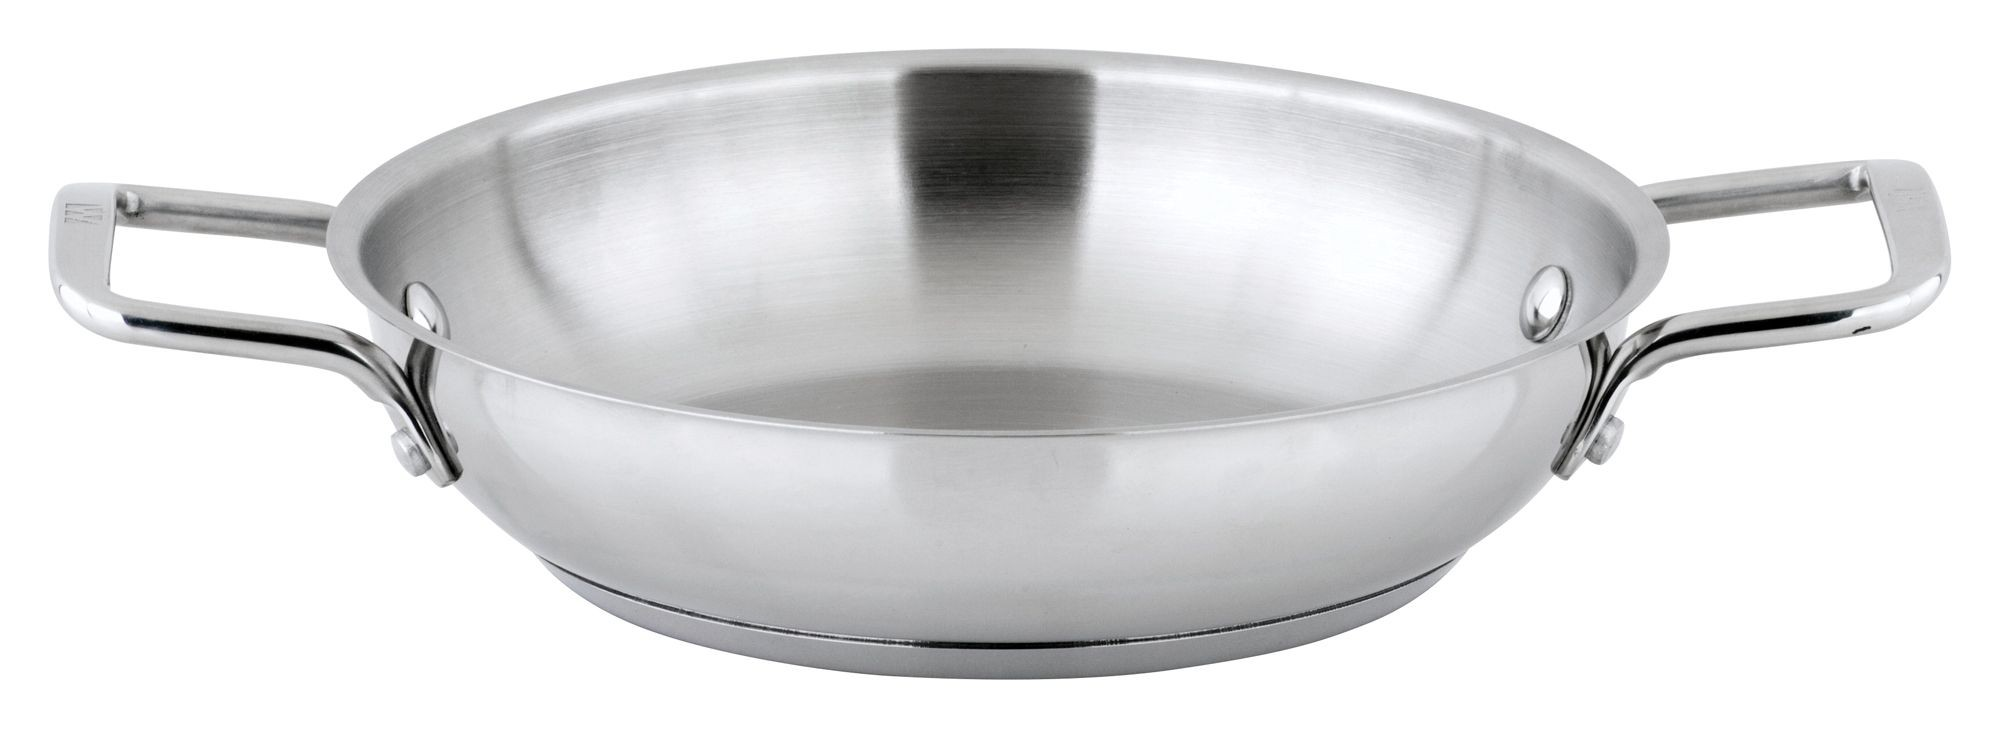 "Winco SSOP-9 Stainless Steel 9-1/2"" Omelet Pan"